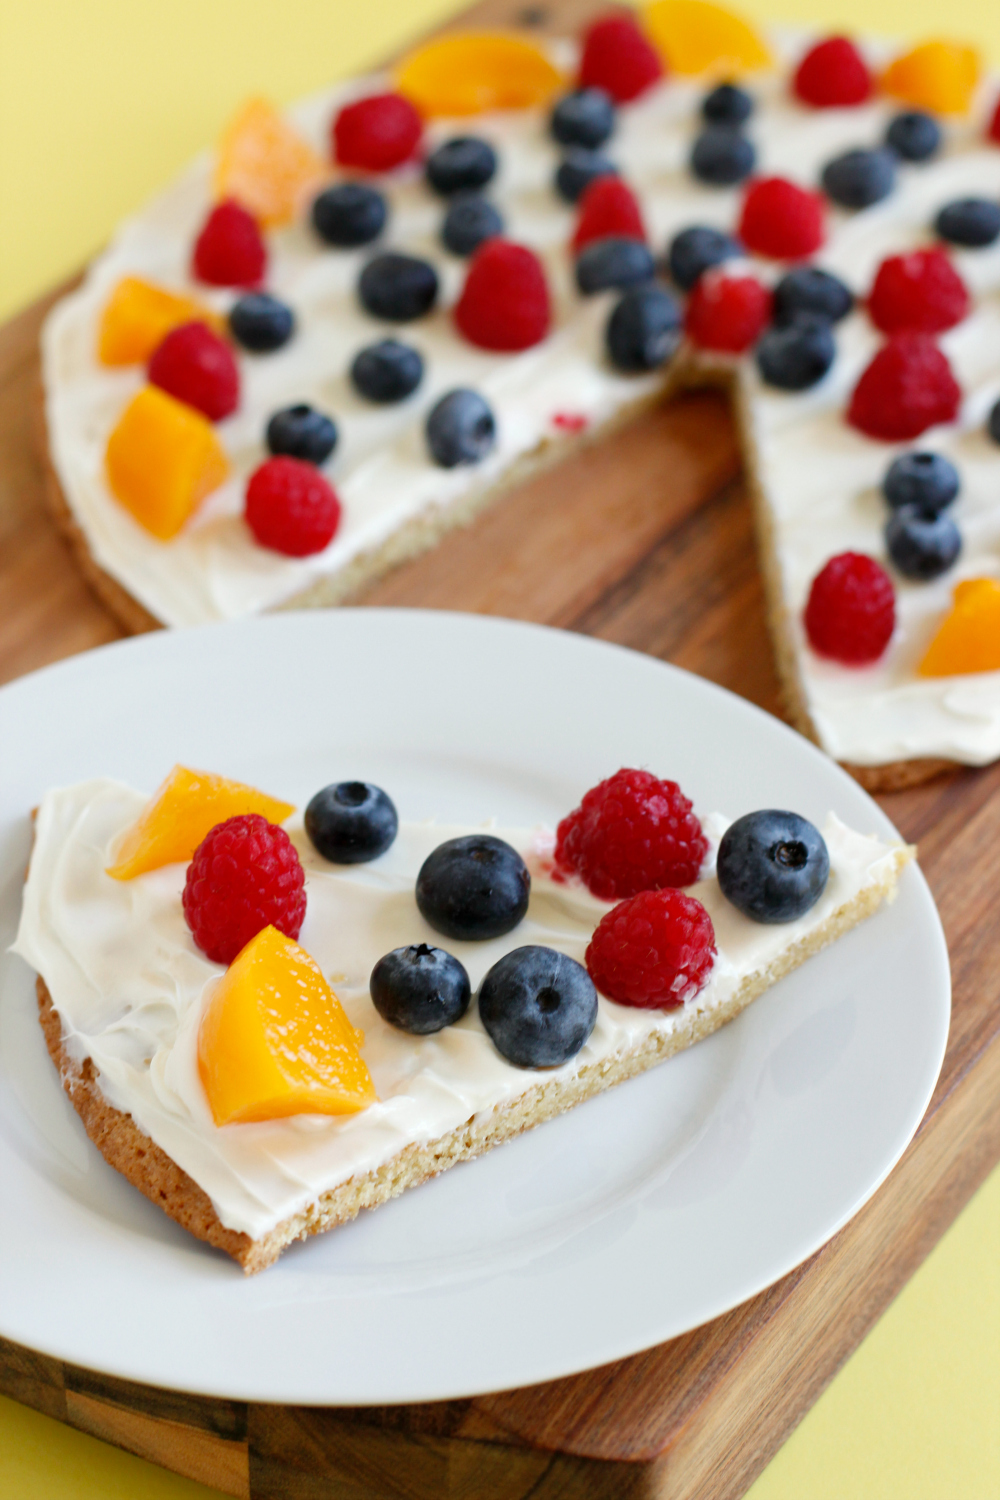 Make Cake Mix Fruit Pizza